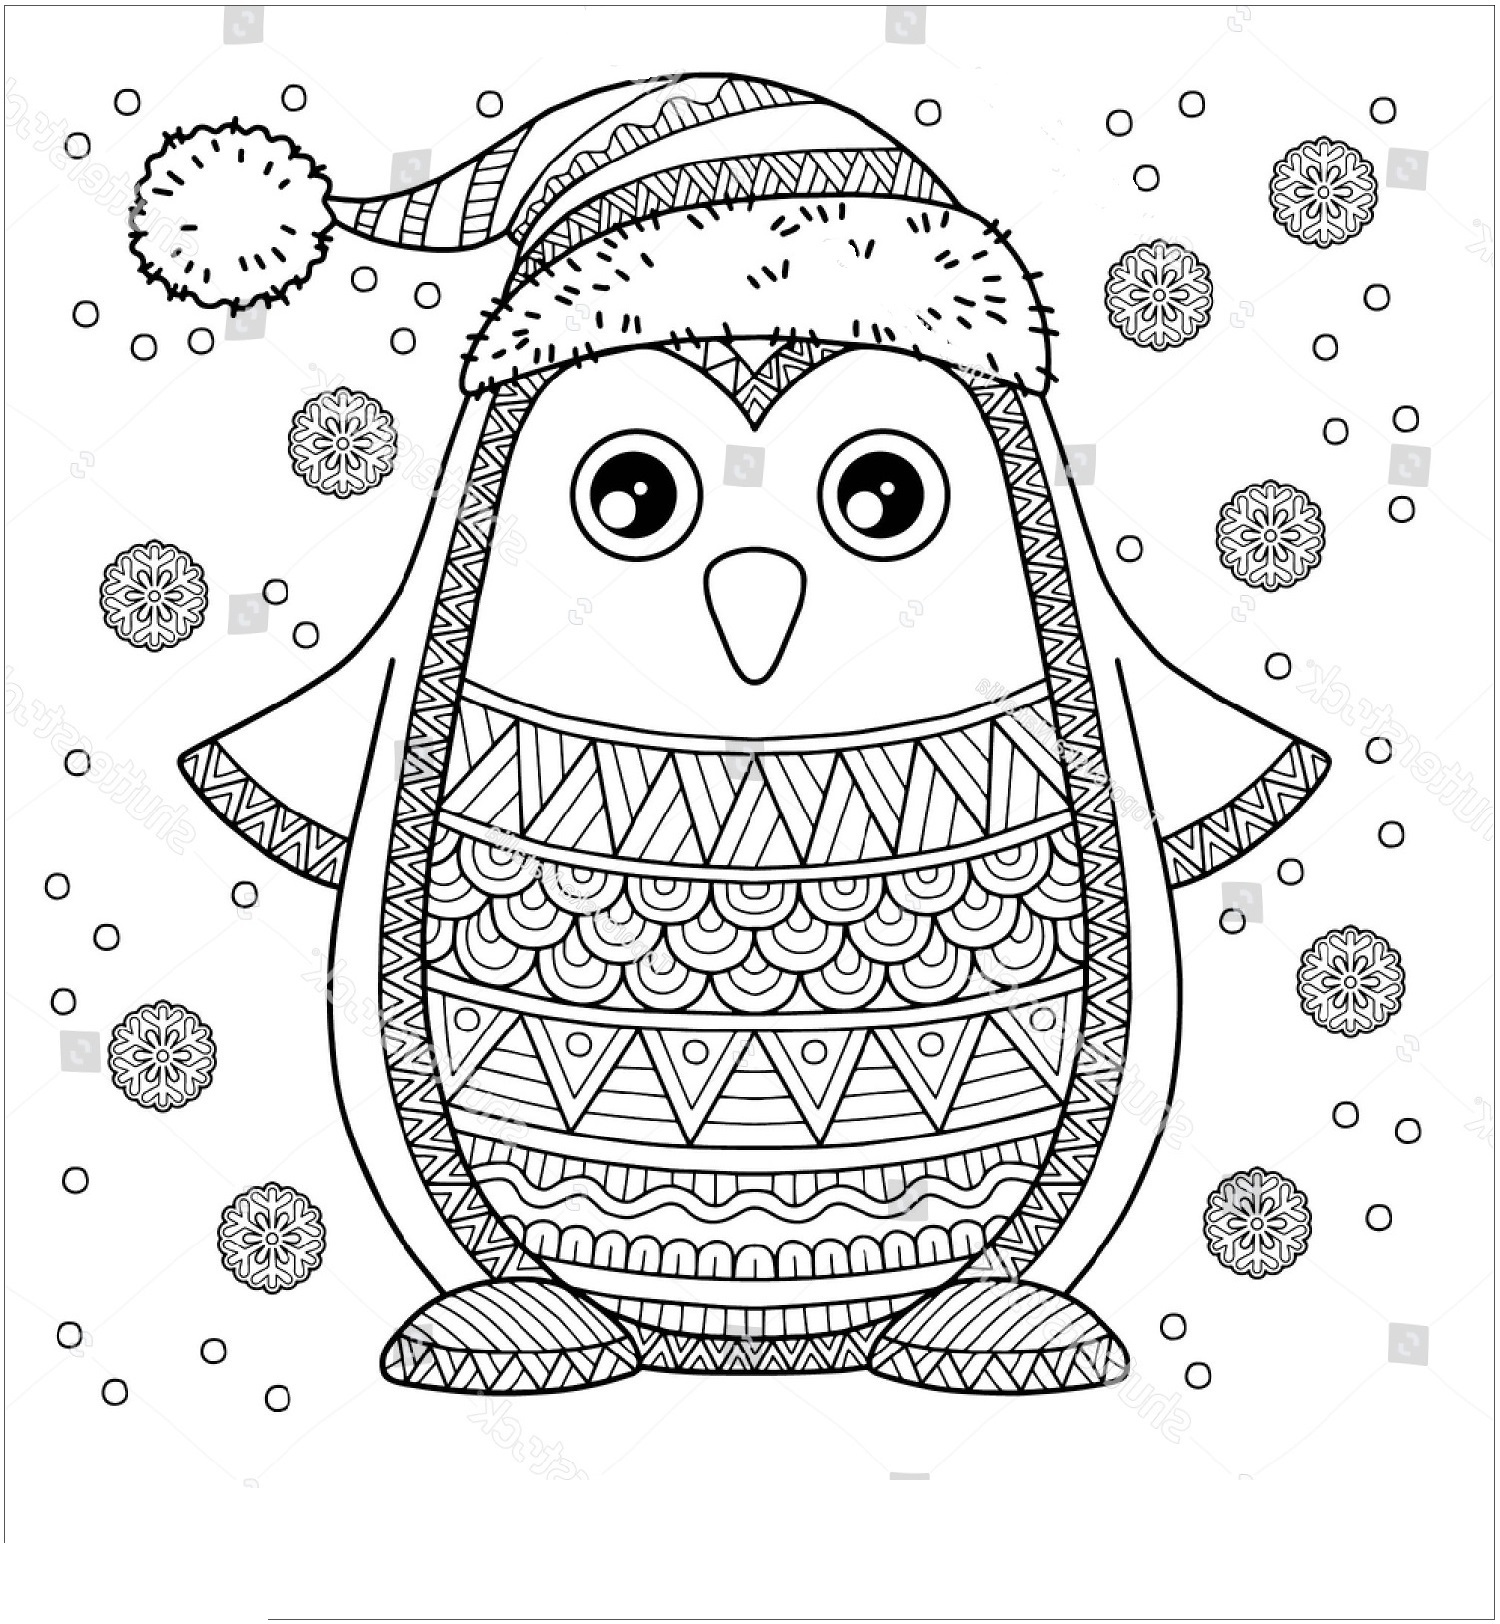 penguins pictures to print printable cute penguin coloring pages 101 coloring print to pictures penguins